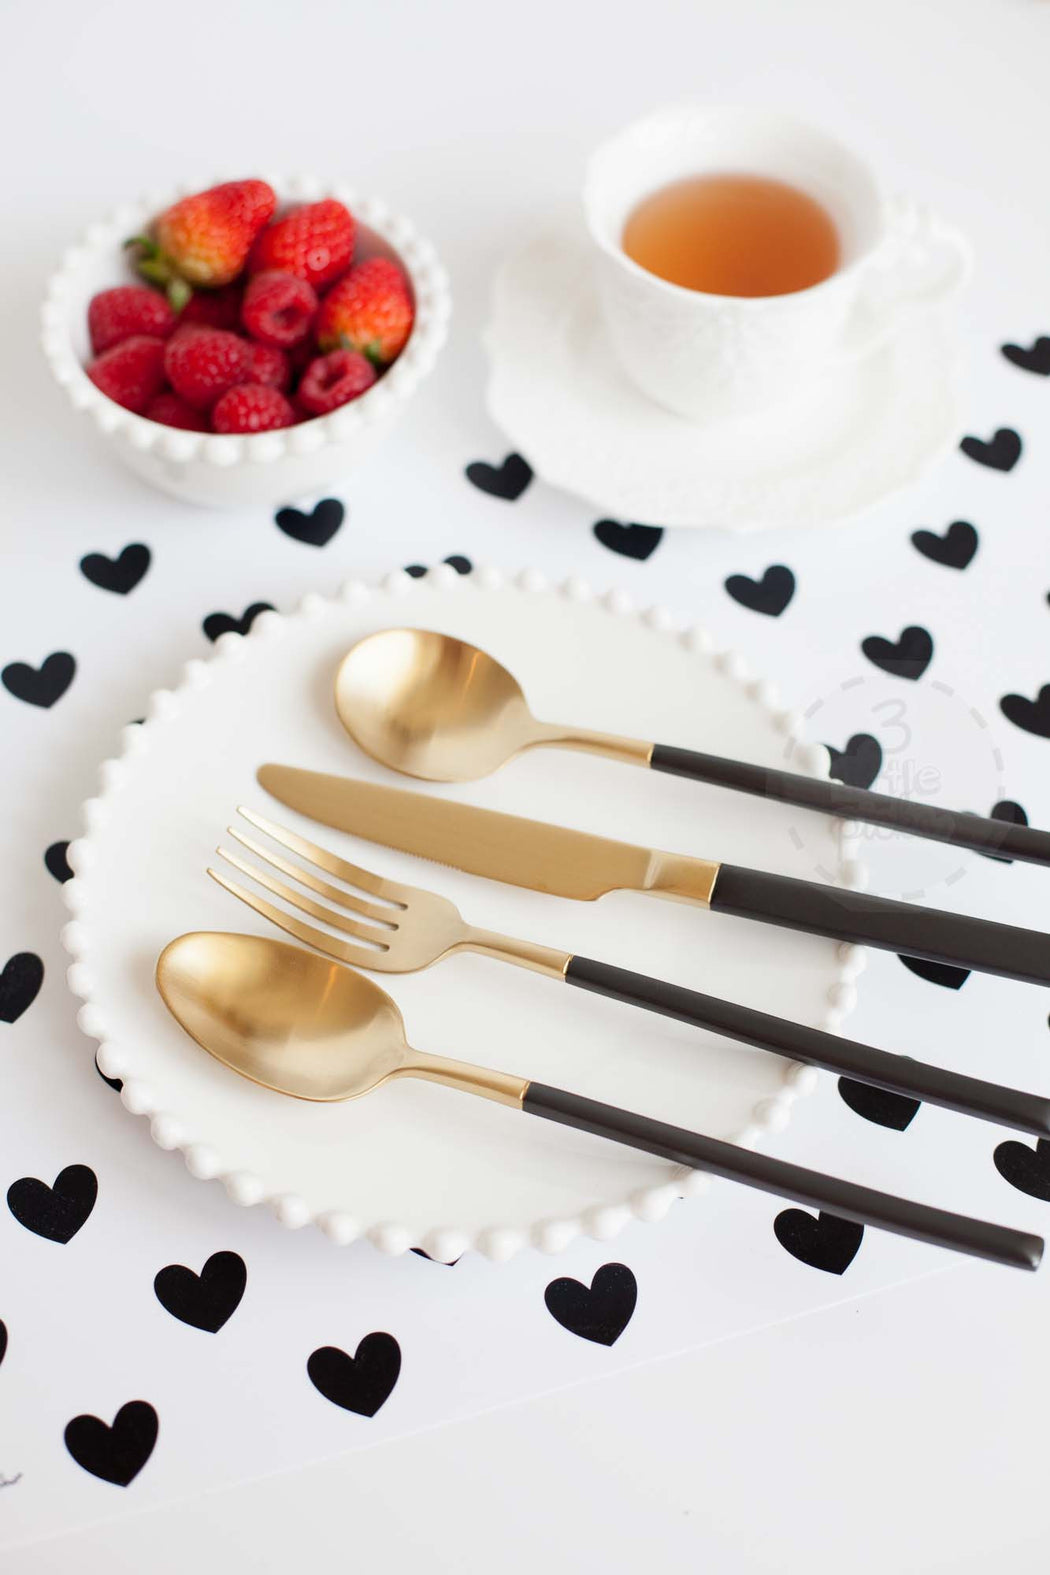 Black and Gold Cutleries, Utensils, 3littlepicks - 3LittlePicks